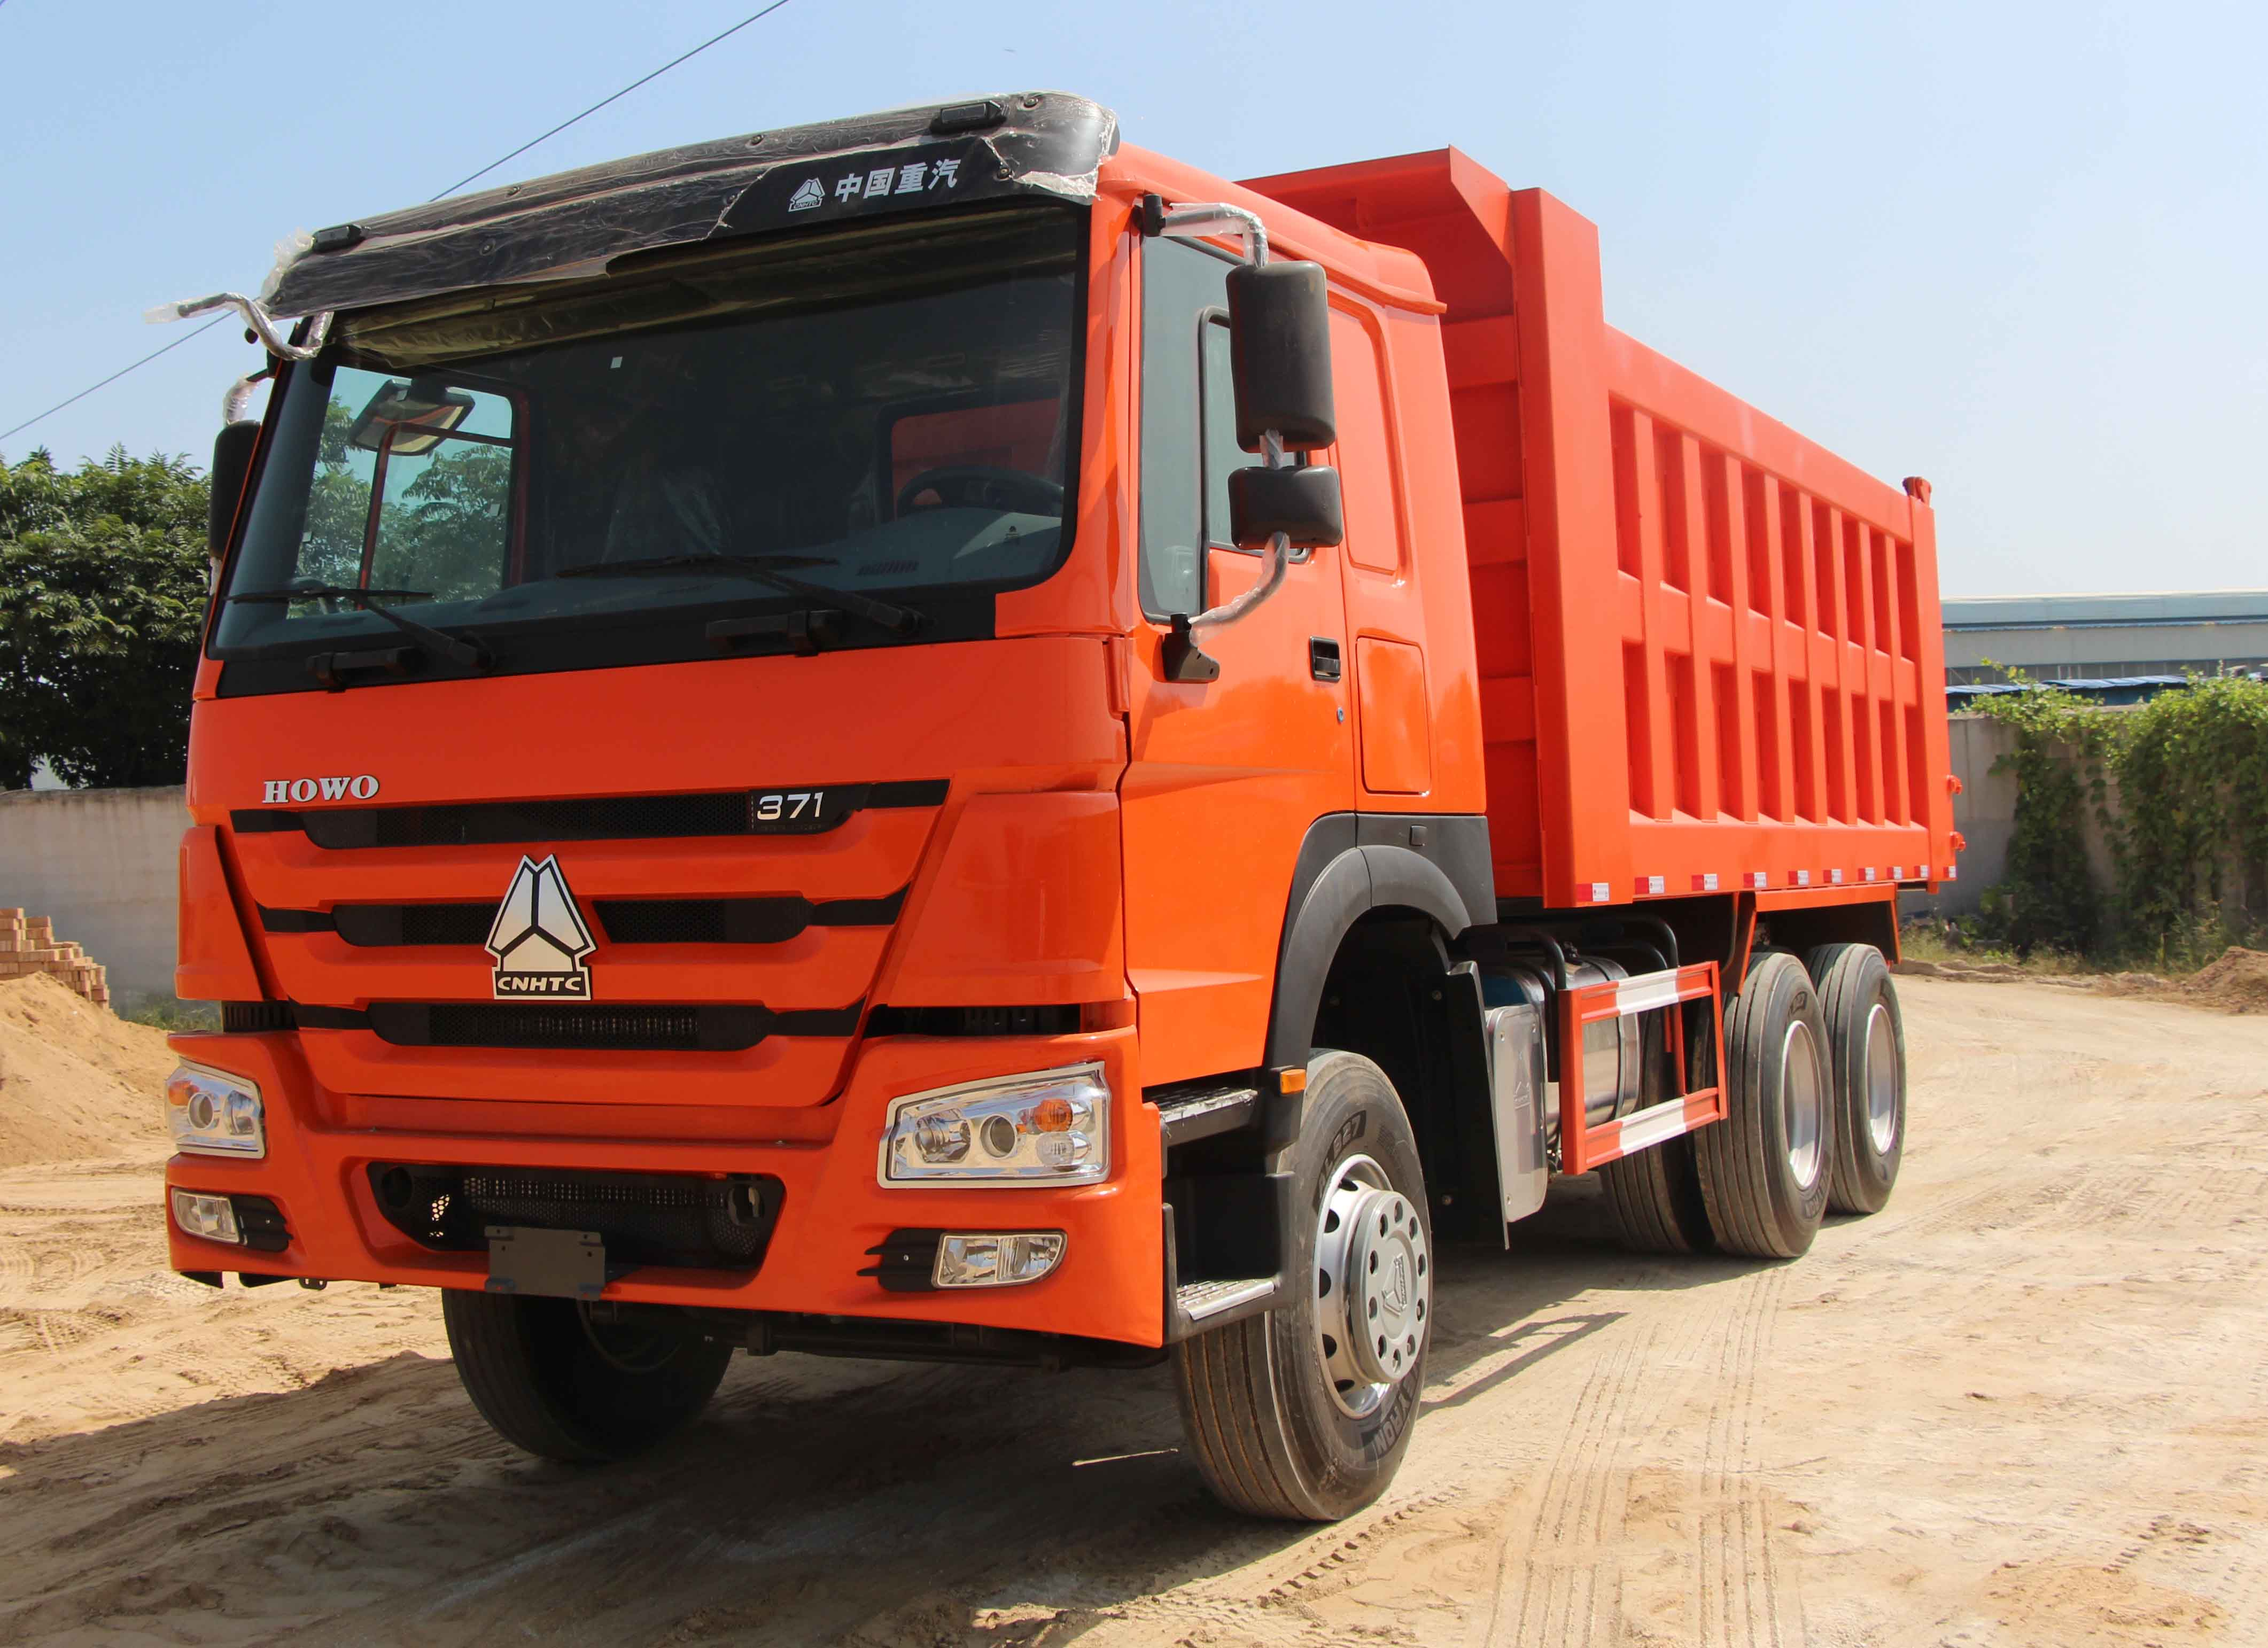 2 Sets of Refurbished Sinotruk HOWO Dump Truck to Asia